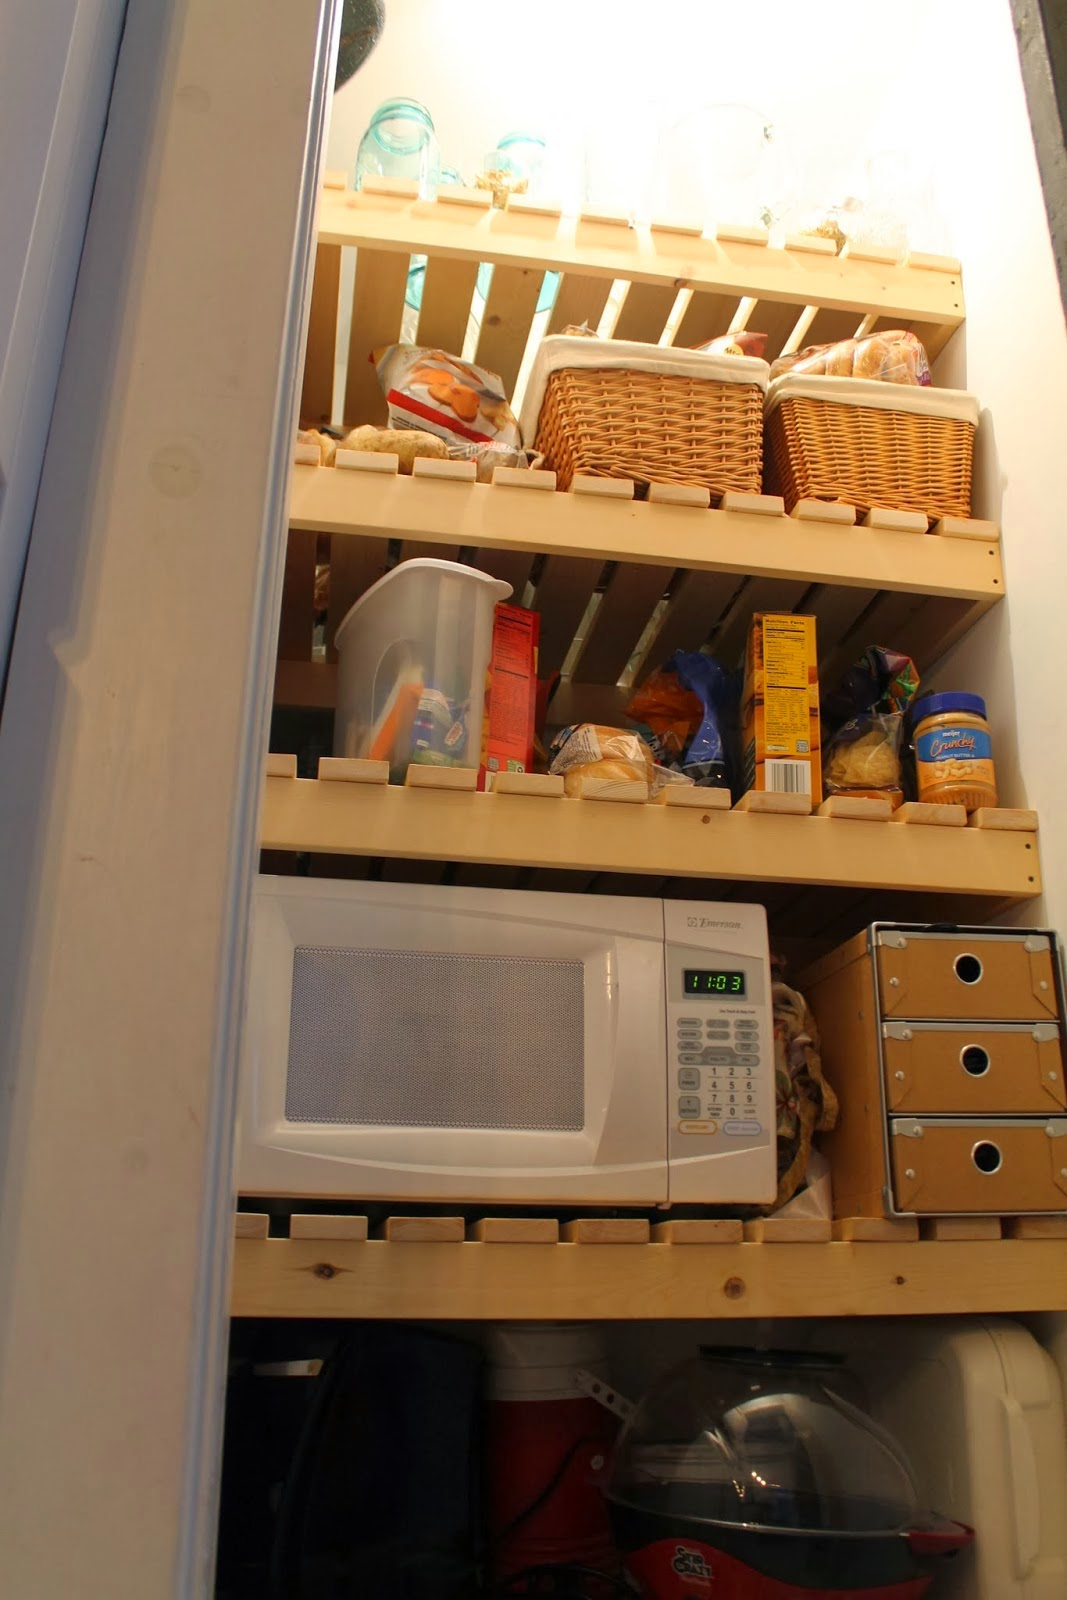 Marvelous photograph of new wood slat pantry shelving Girl Meets Carpenter on @Remodelaholic with #B03E1B color and 1067x1600 pixels